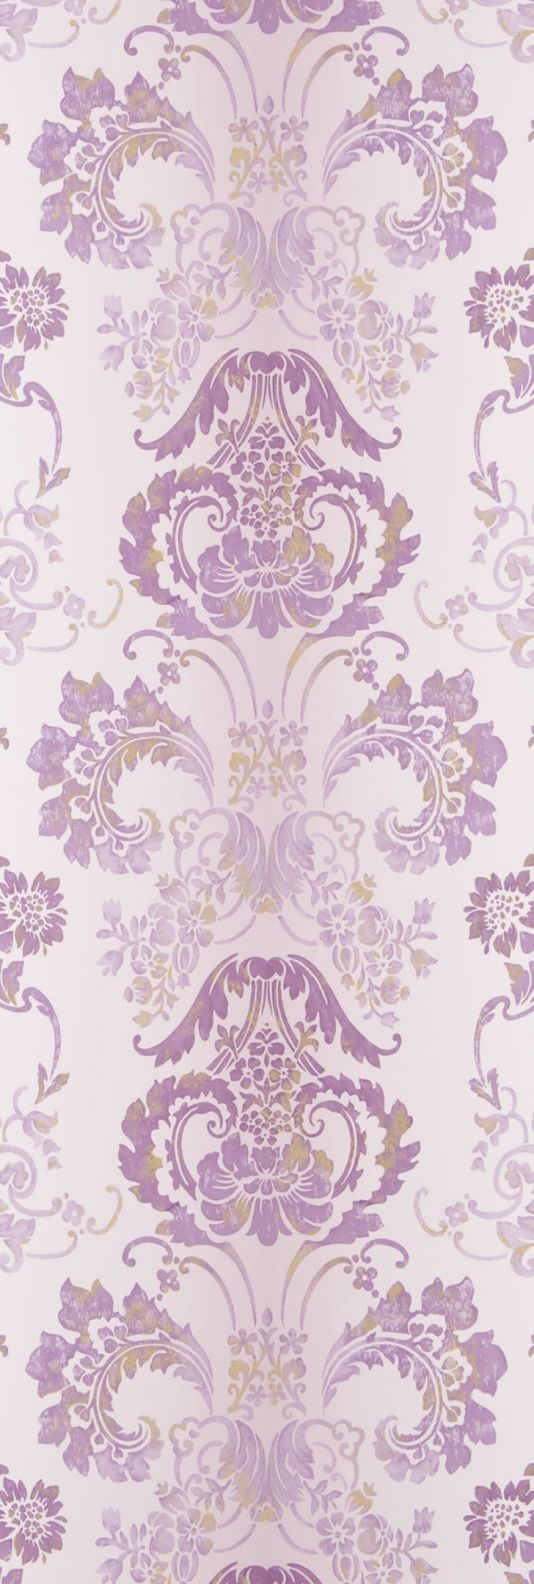 Kashgar Wallpaper A traditional damask shaded wallpaper in mauve with a contemporary metallic detail.